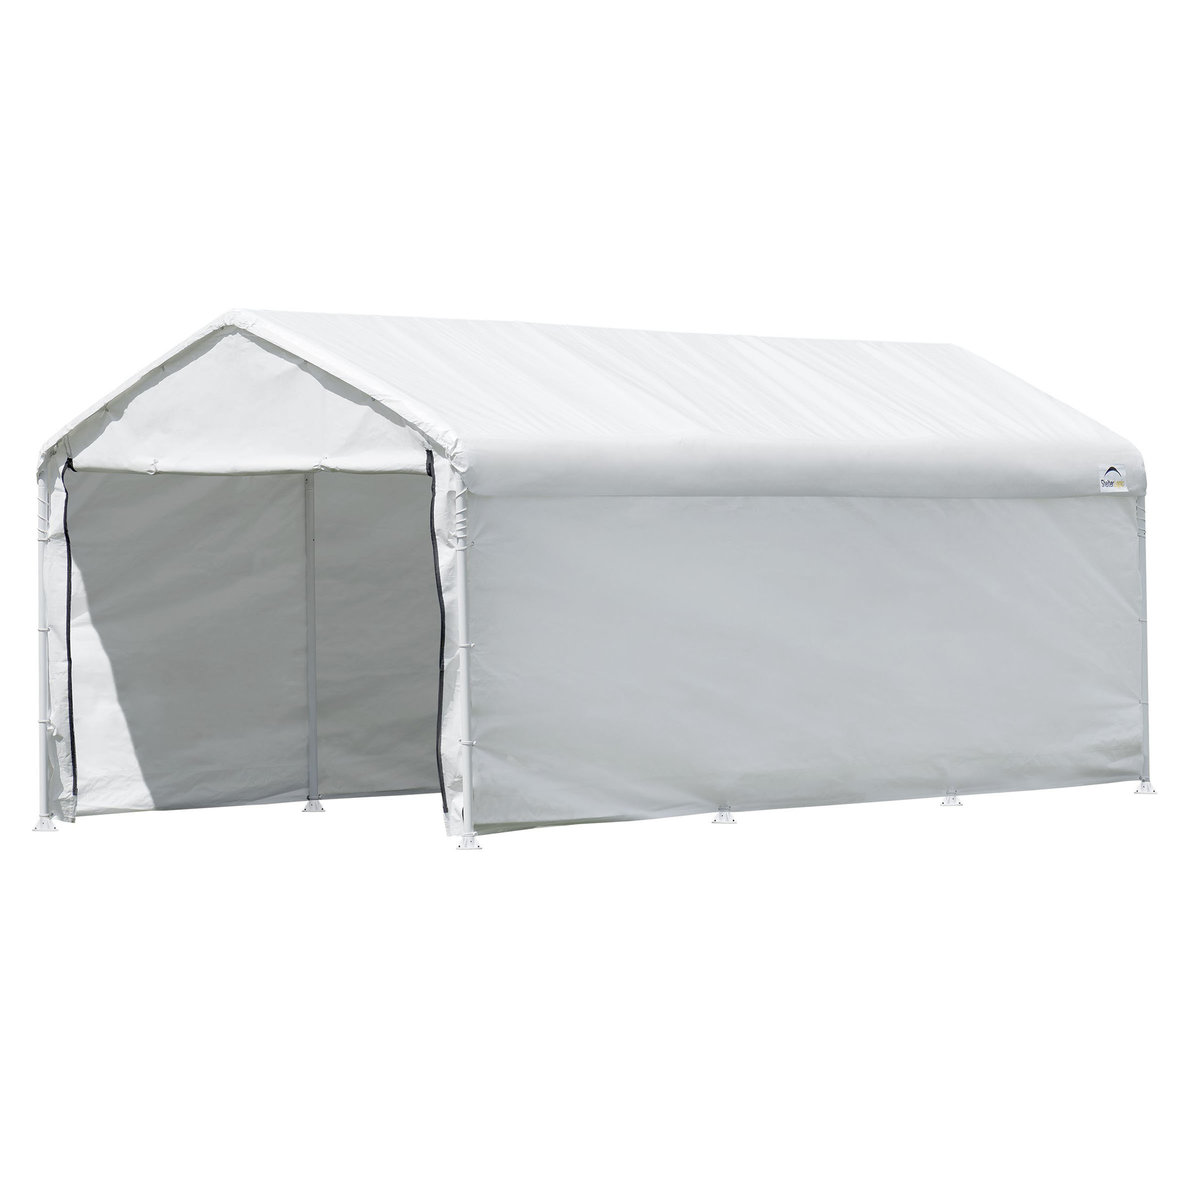 Shelterlogic Super Max 2 In 1 10 Ft X 20 Ft 4 Rib Canopy With Enclosure Kit